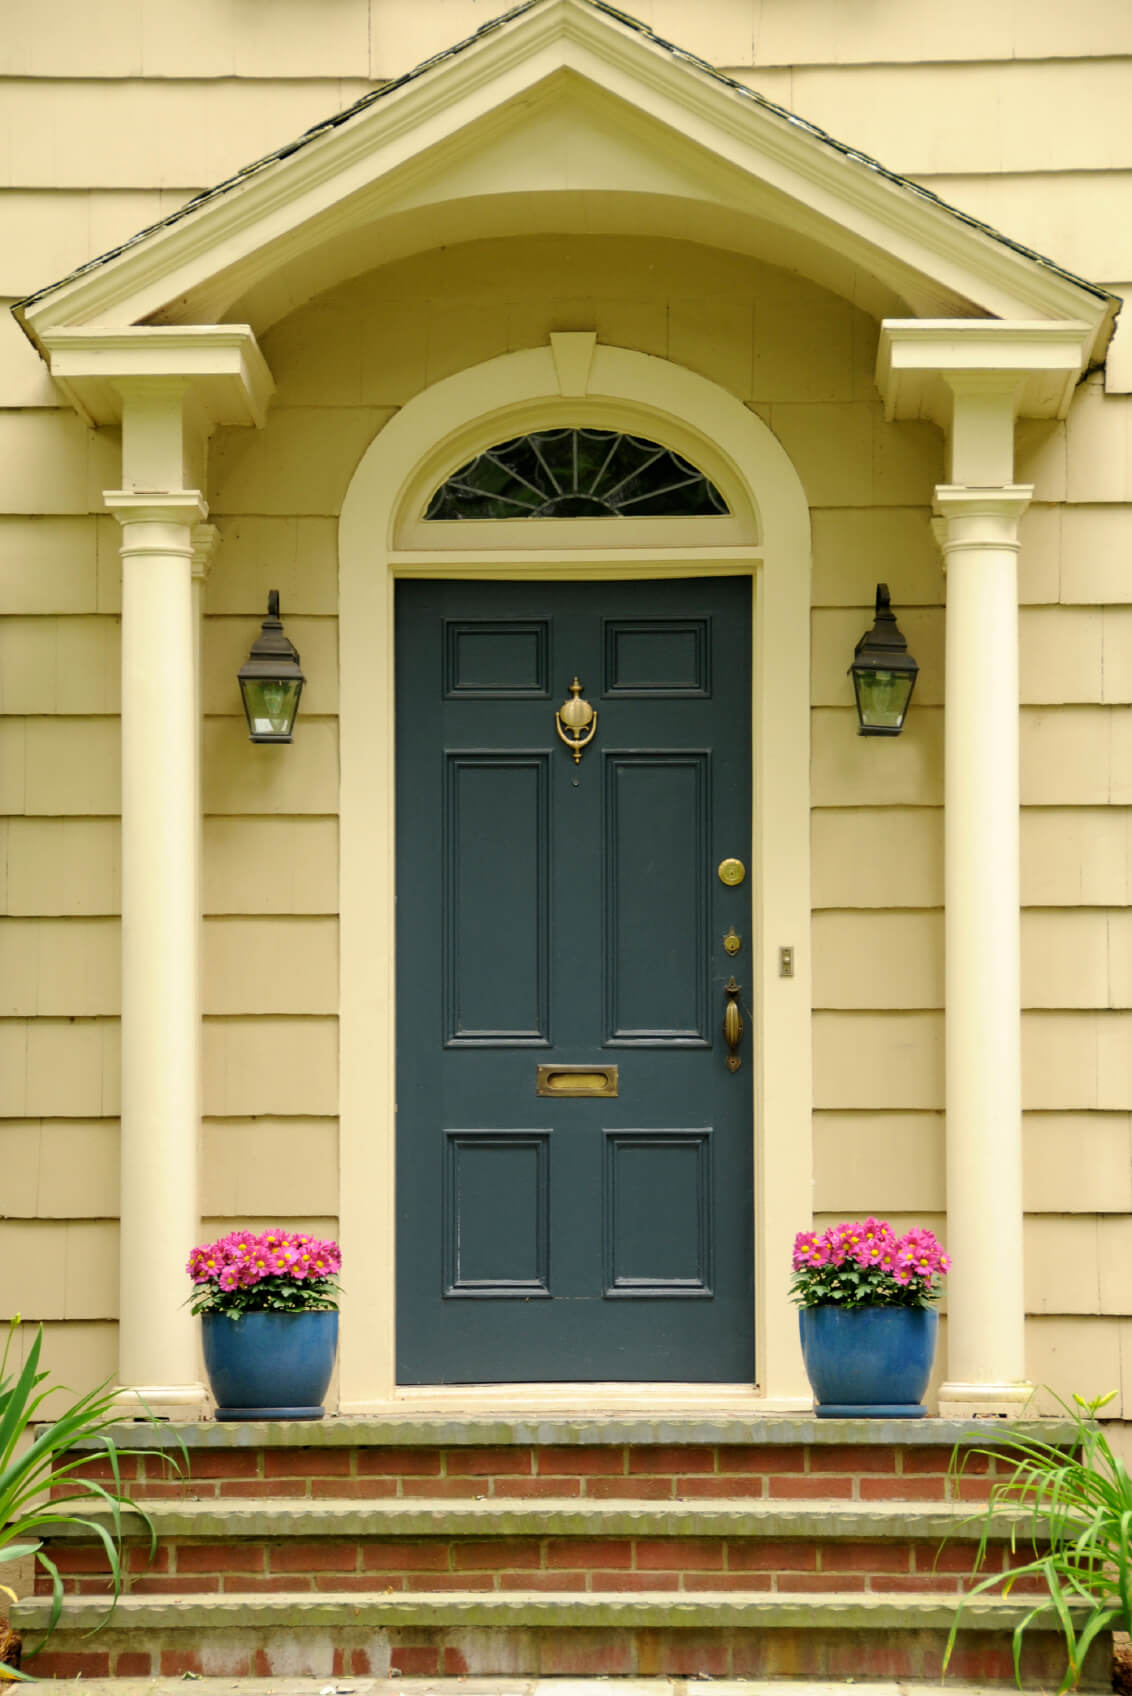 White columns and a pair of wall sconces along with lovely potted plants add a perfect symmetry to the blue front door that's fitted with brass hardware.